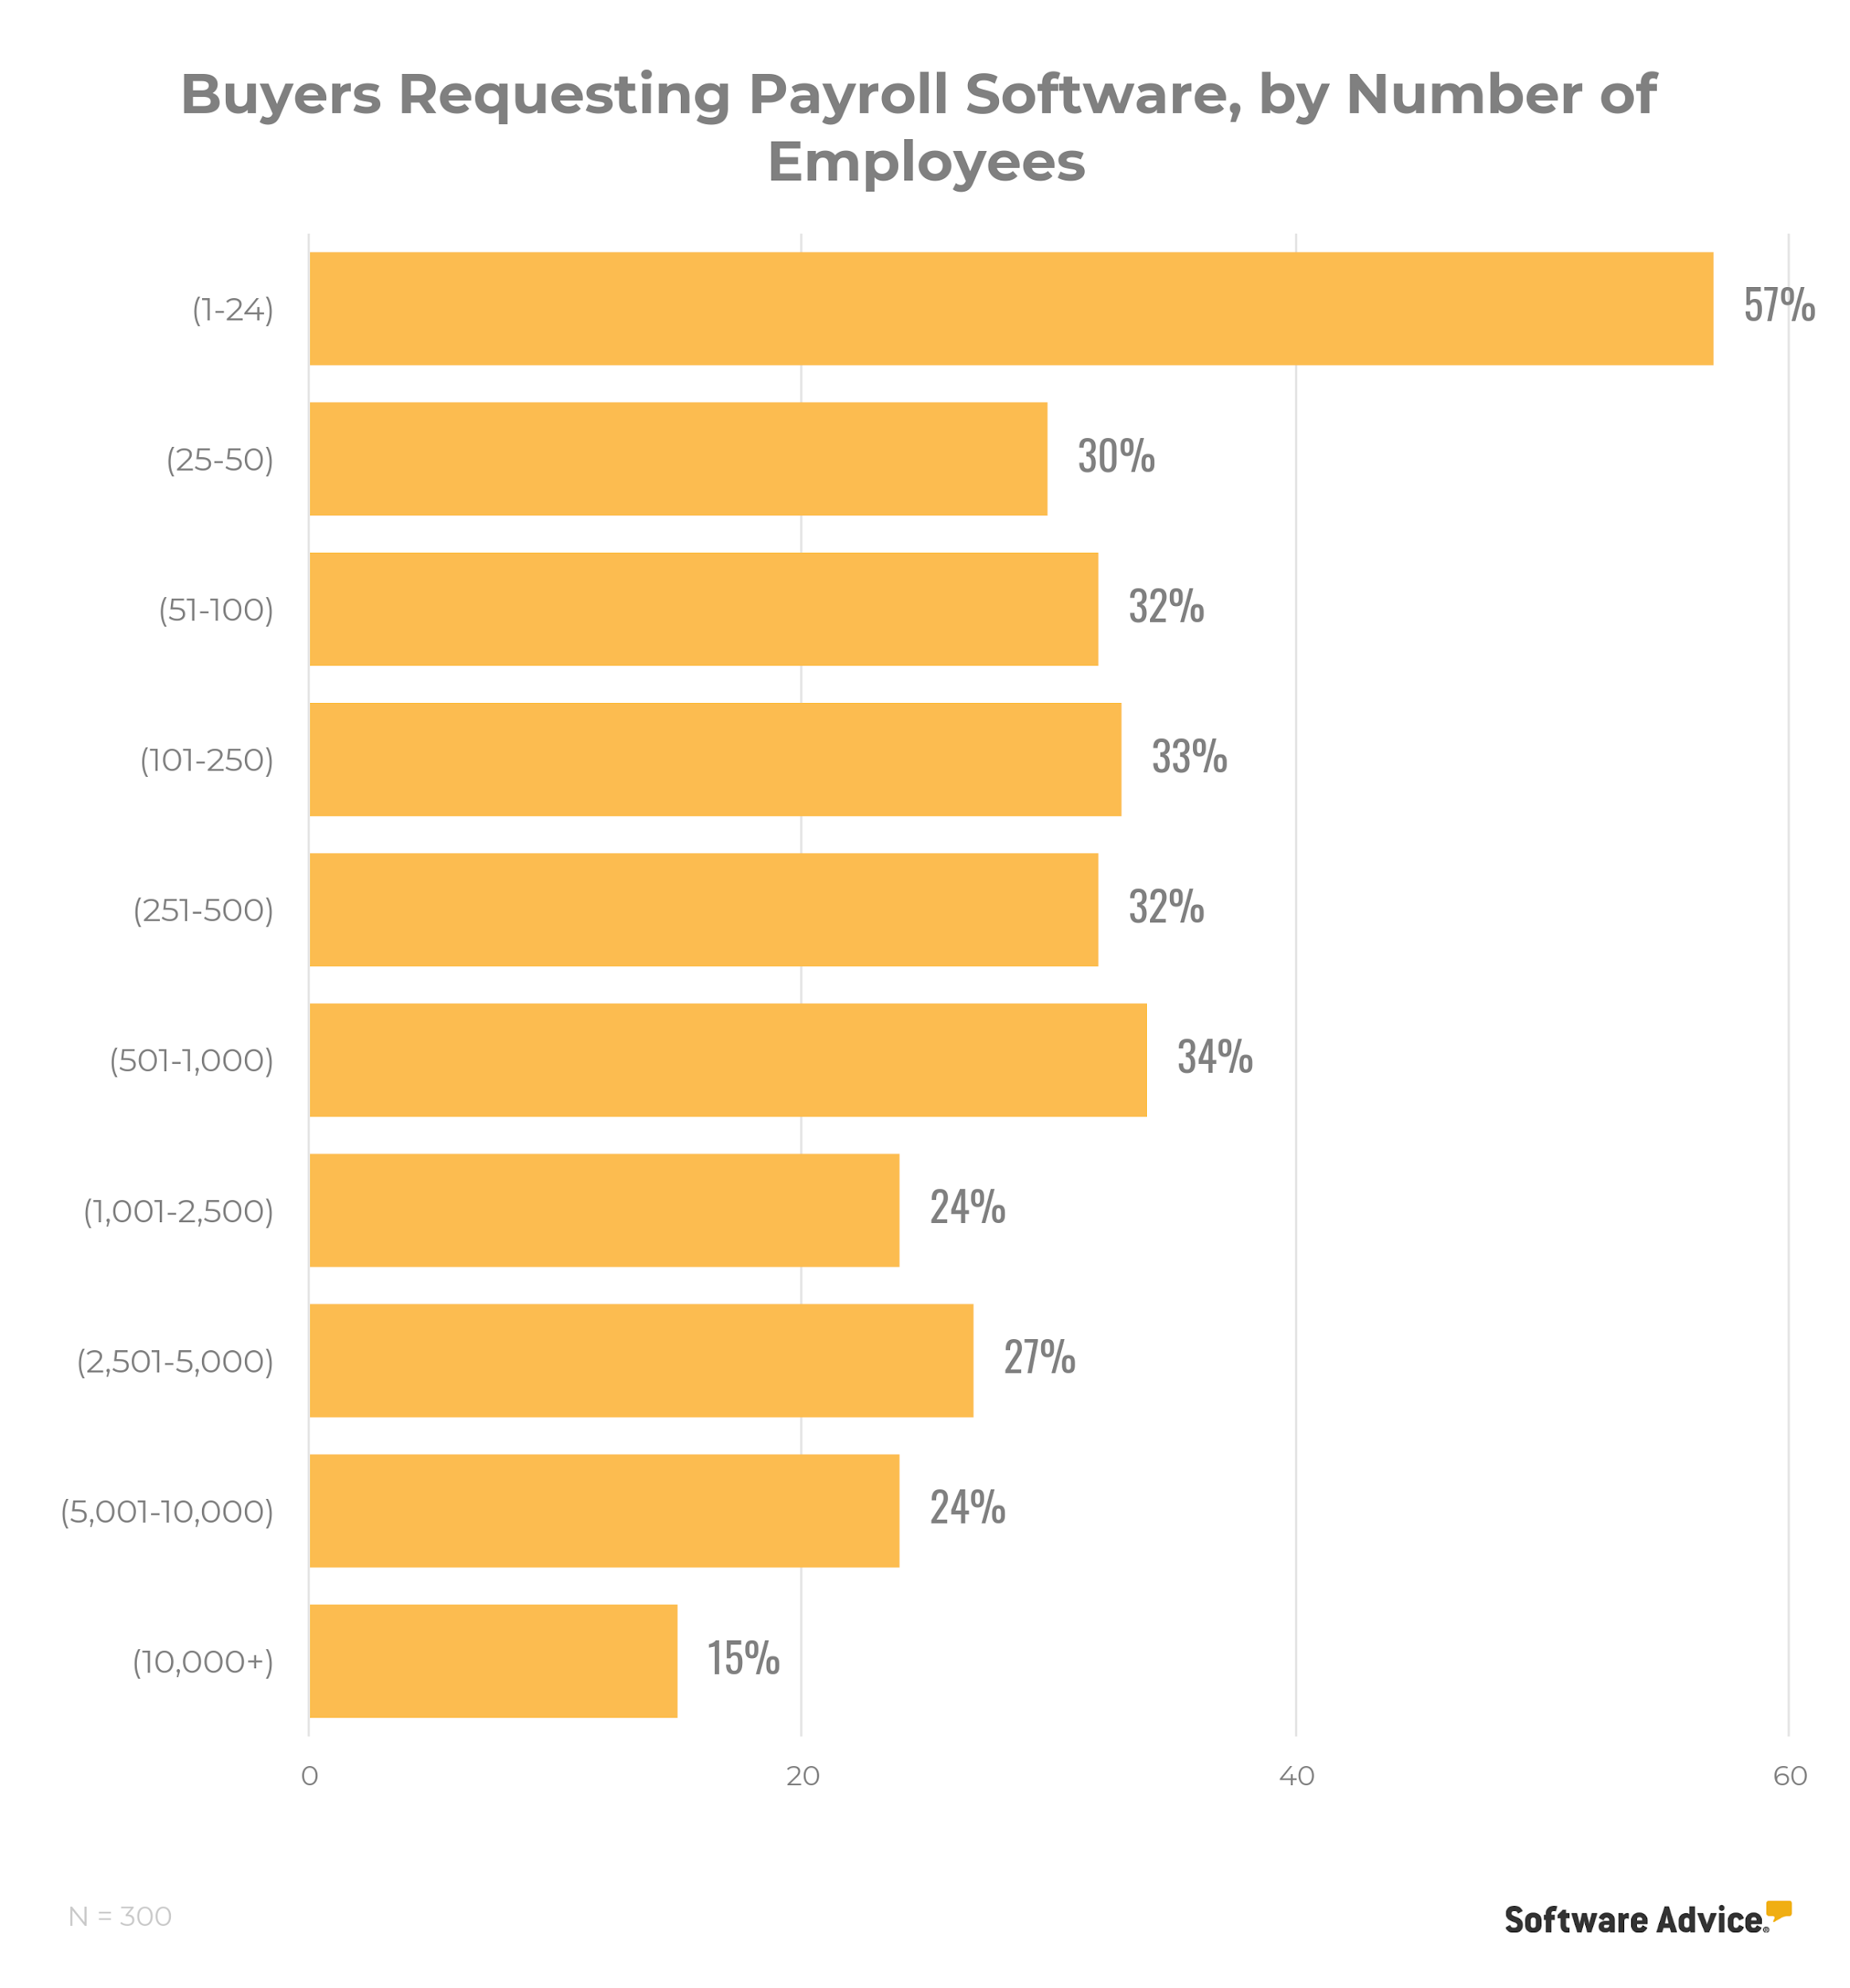 chart showing that among buyers requesting payroll software, request is most common in businesses with 1-24 employees